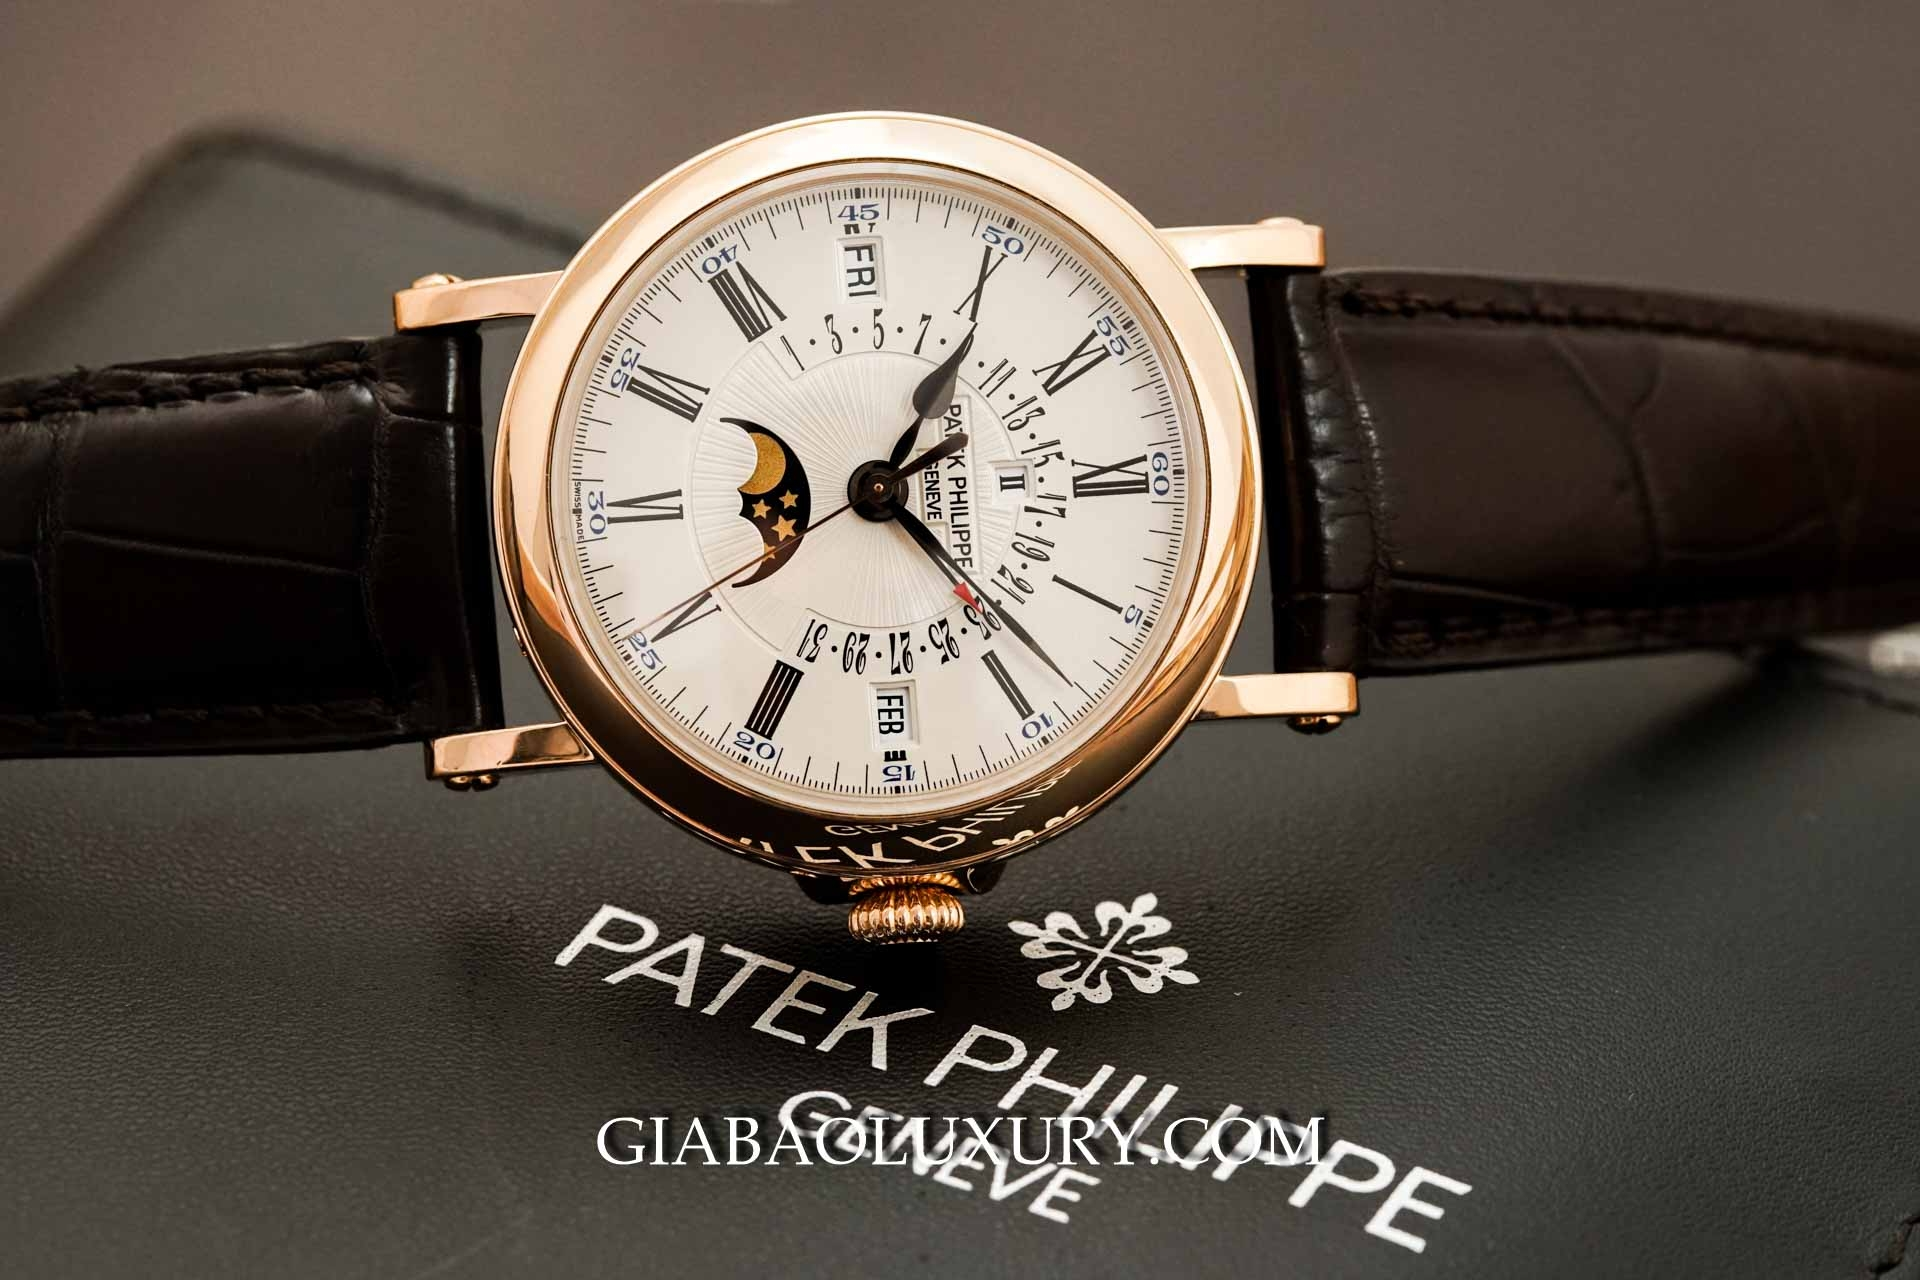 Patek Philippe Grand Complications 5159R-001